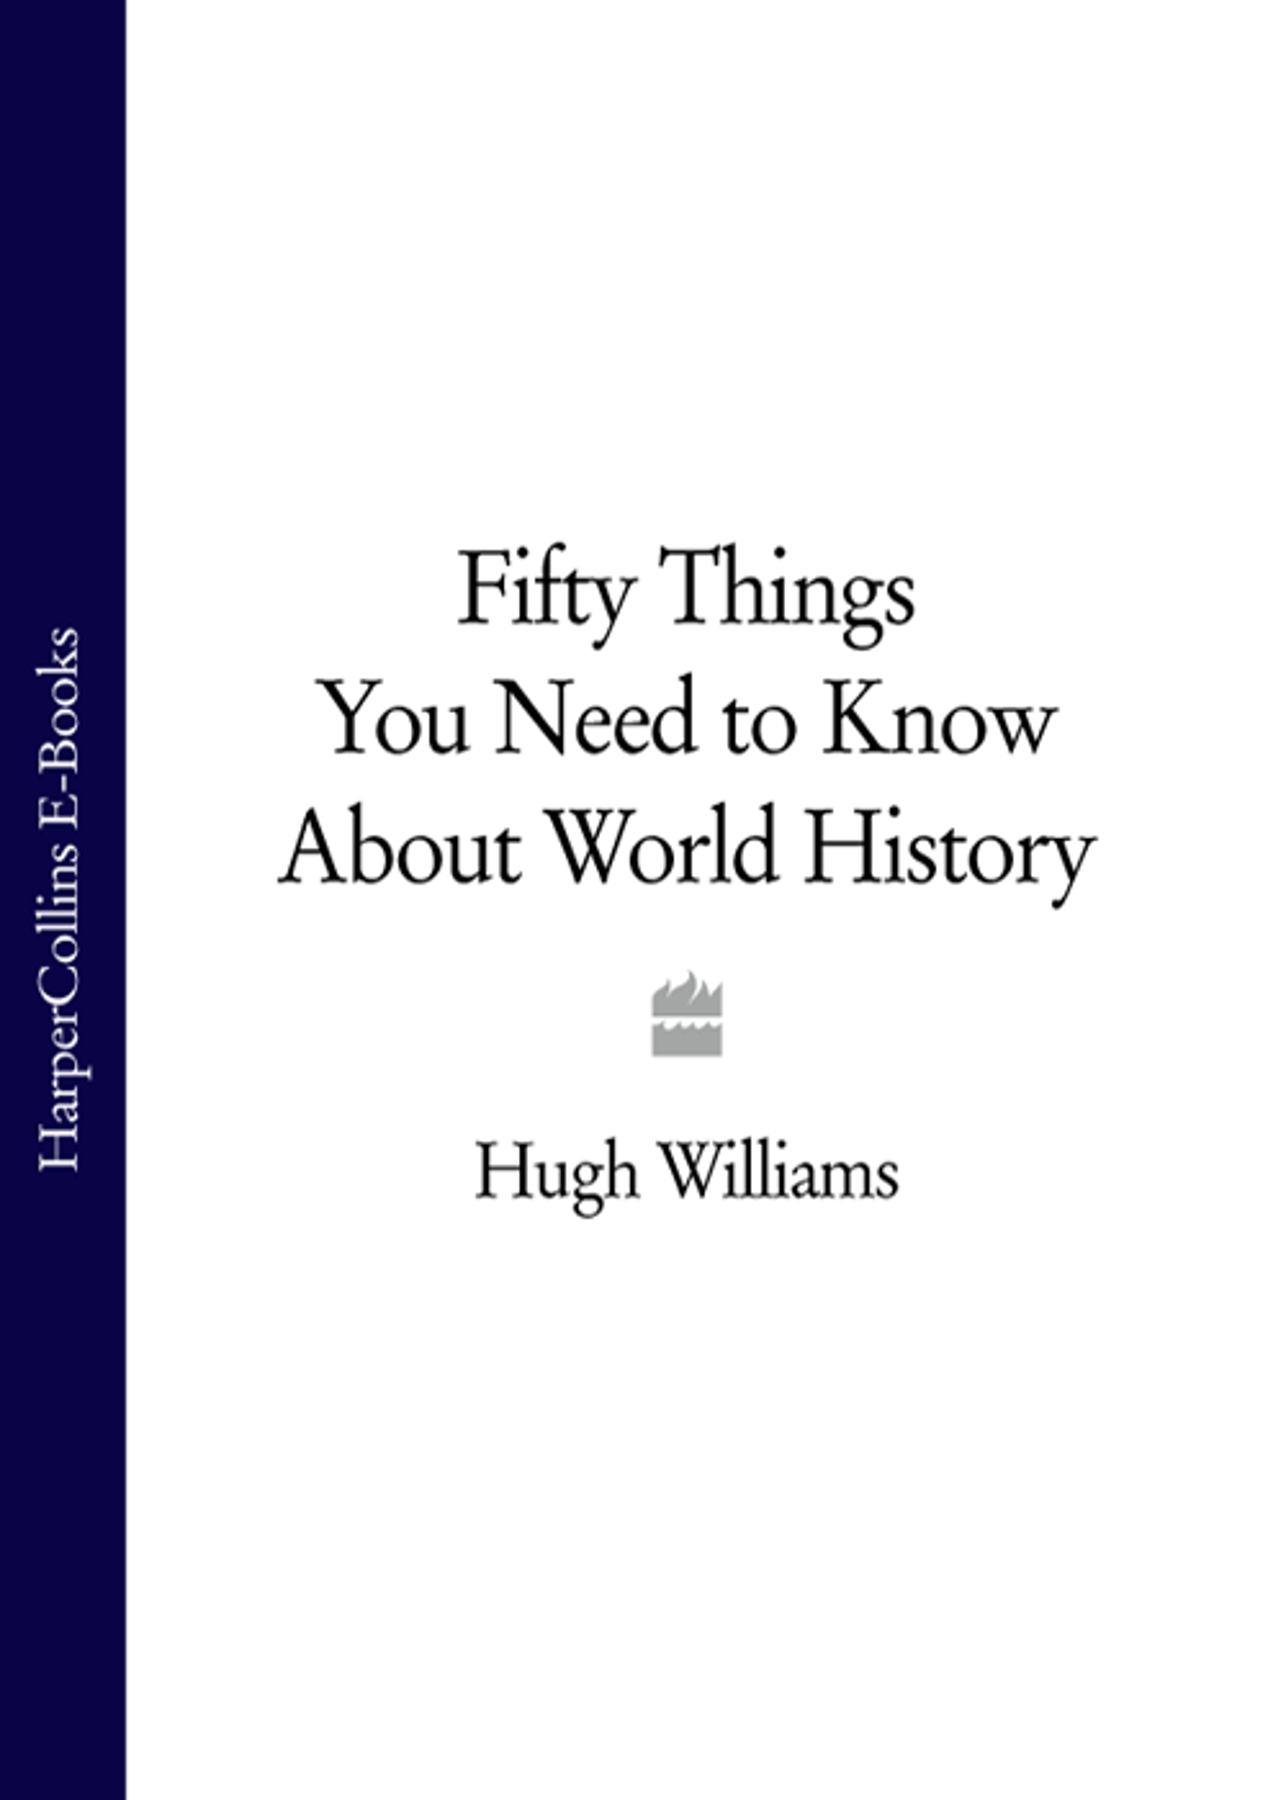 Hugh Williams Fifty Things You Need to Know About World History simon middleton what you need to know about marketing isbn 9781119974581